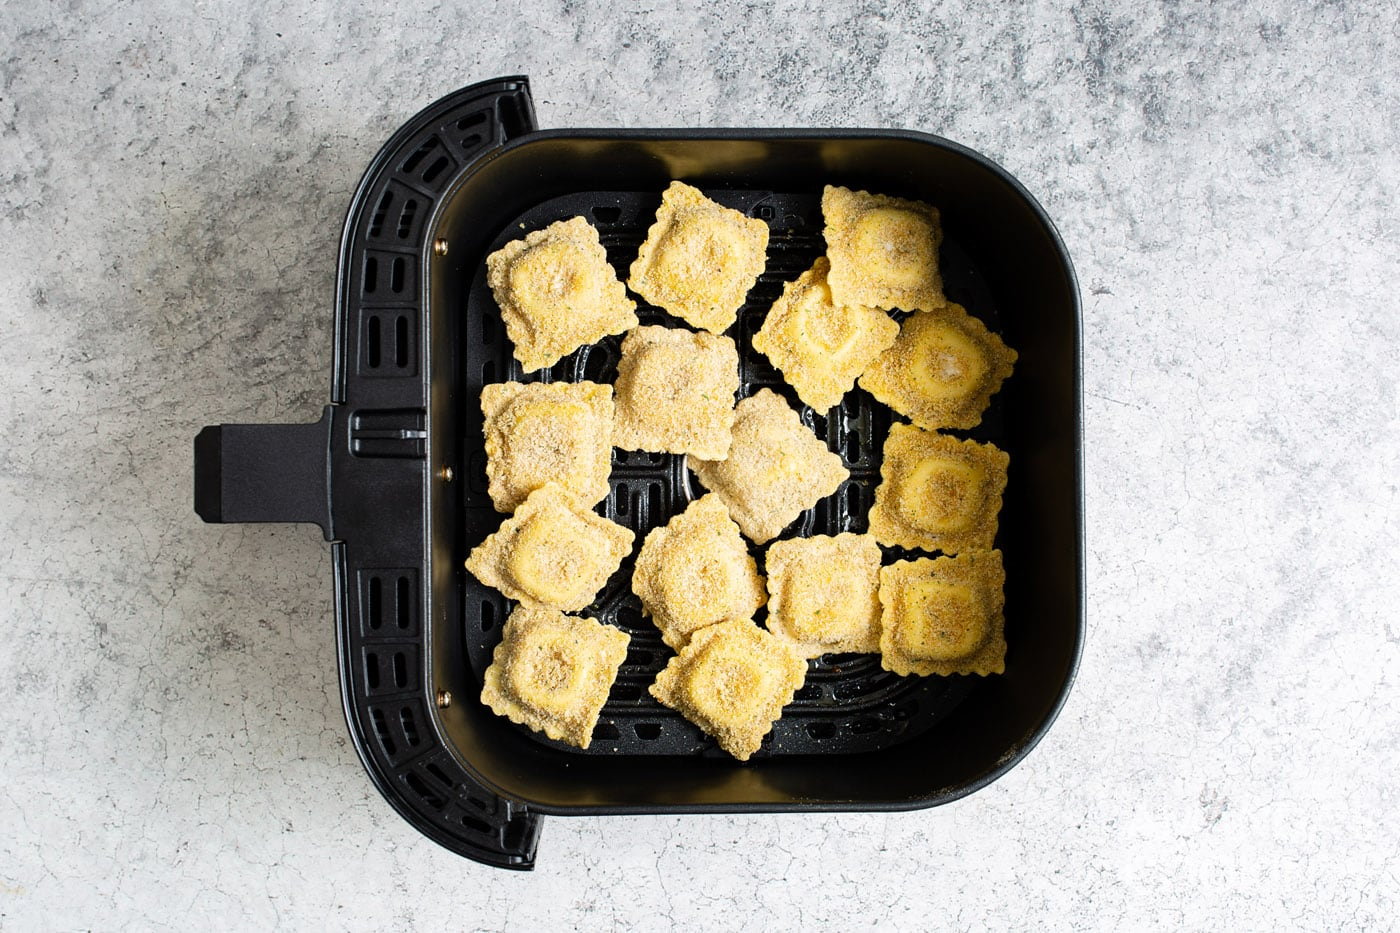 ravioli in air fryer